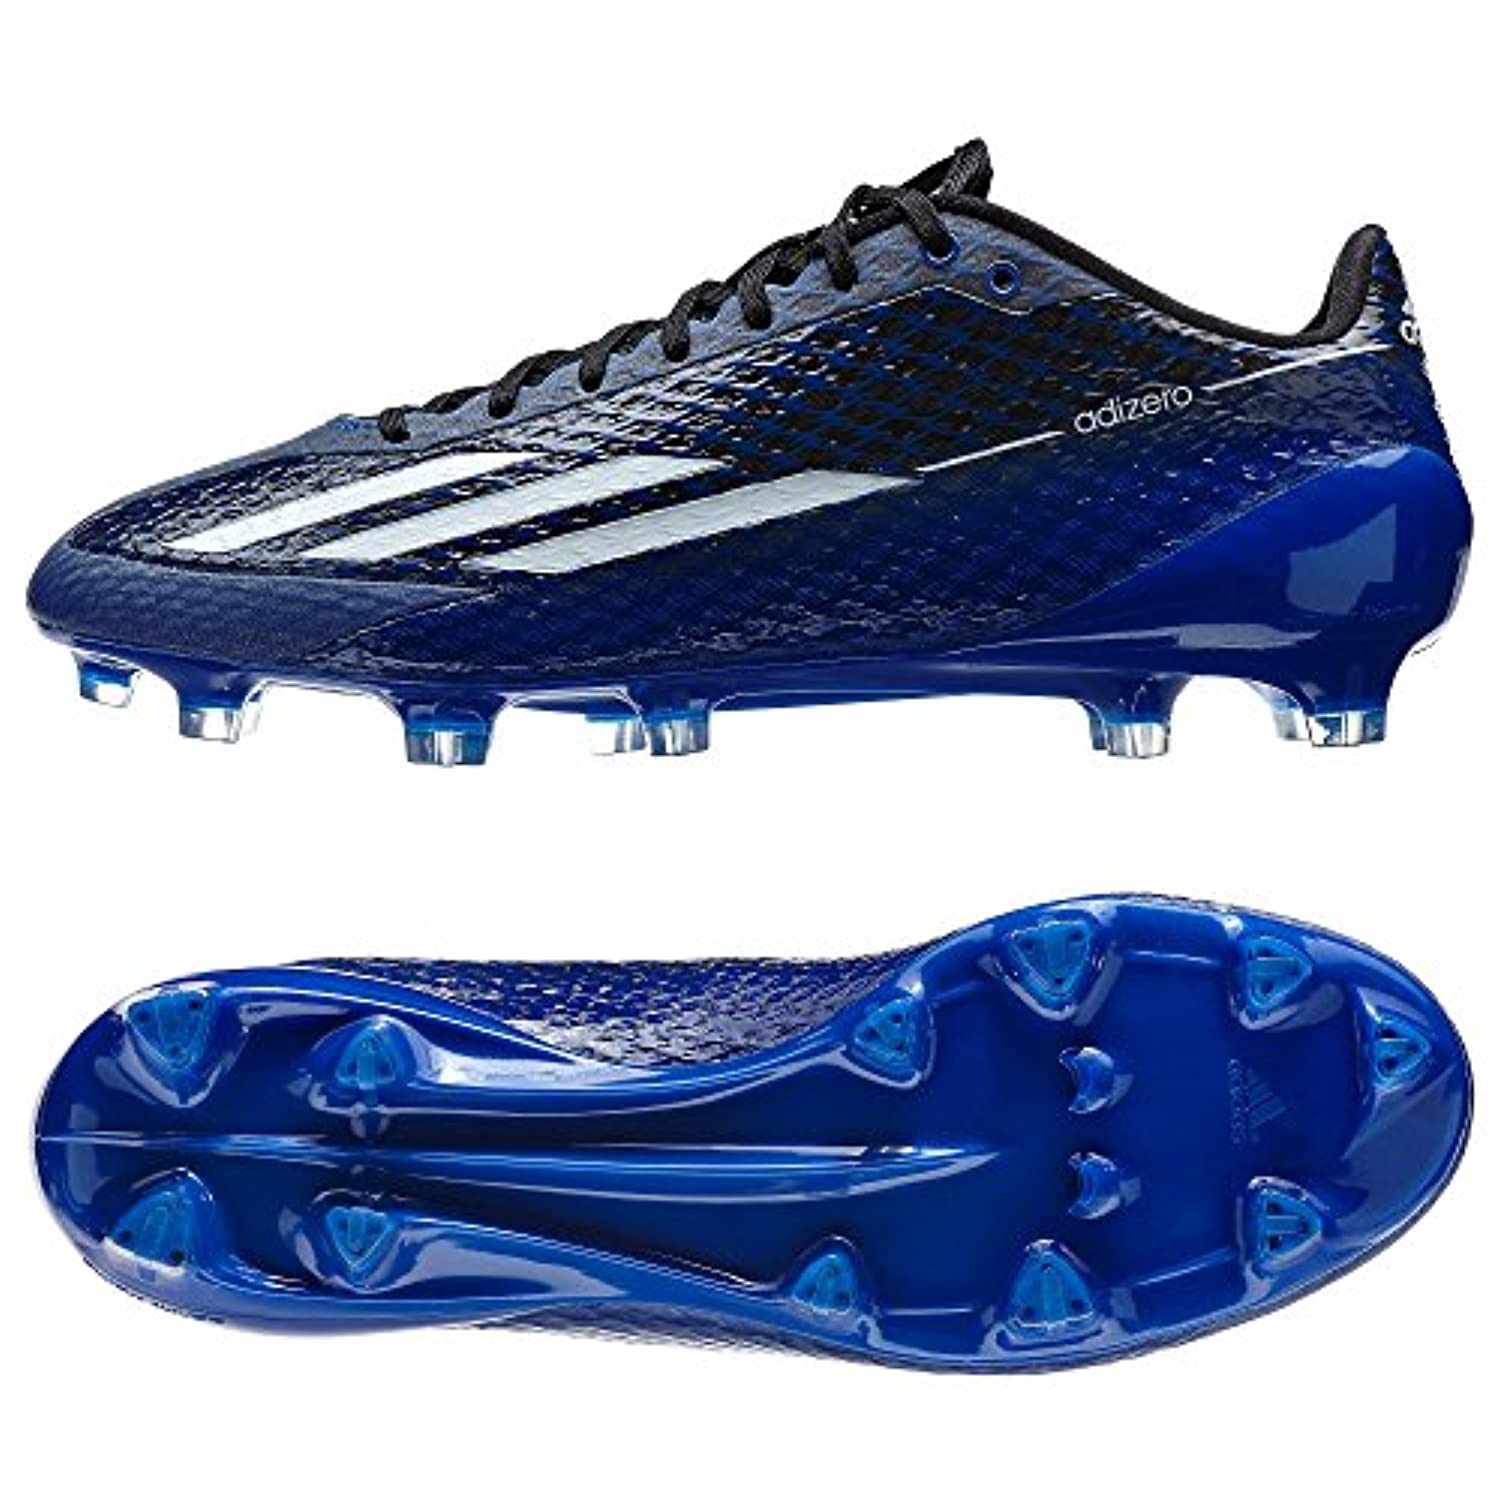 1f2426dbab7fe adidas adizero football cleats 5 star 3.0